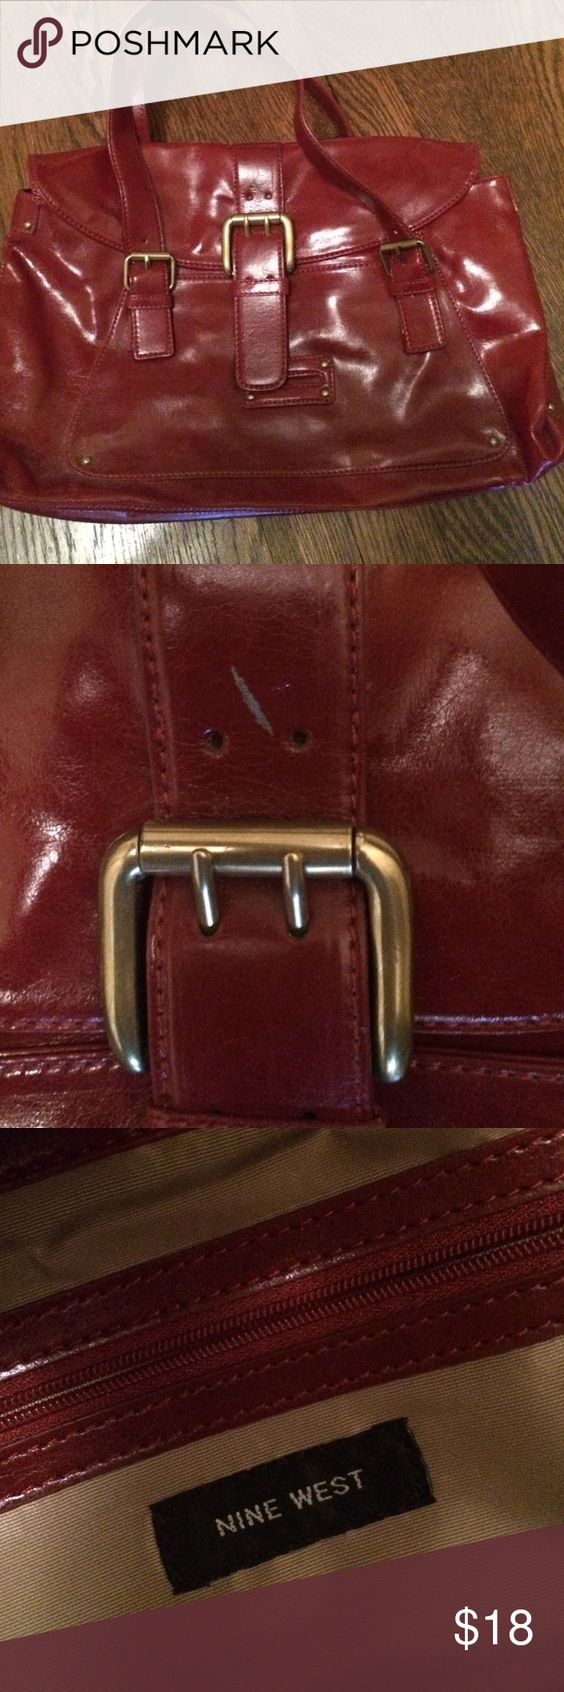 Nine West Red bag Red Ralph Lauren bag. Large size of  16 wide by 9 tall. One small blemish above buckle. See photo. Nine West Bags Totes